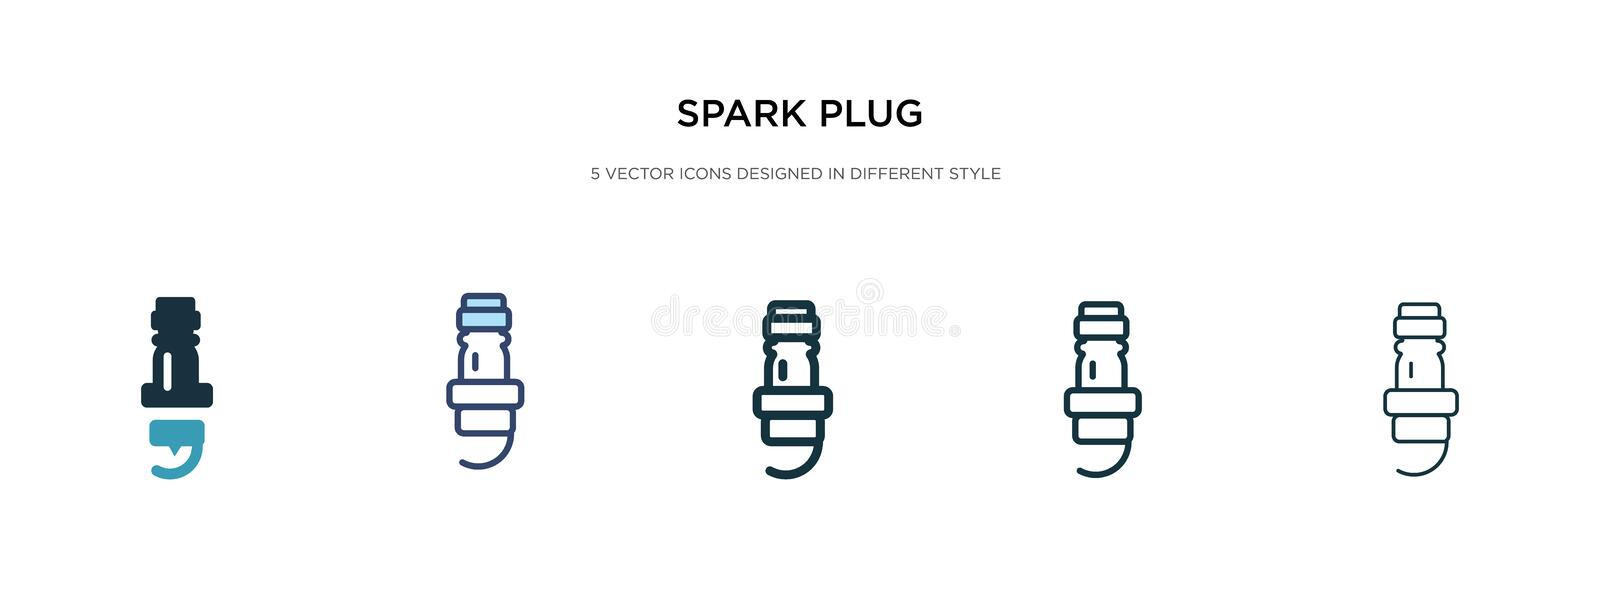 Spark plug icon in different style vector illustration. two colored and black spark plug vector icons designed in filled, outline vector illustration